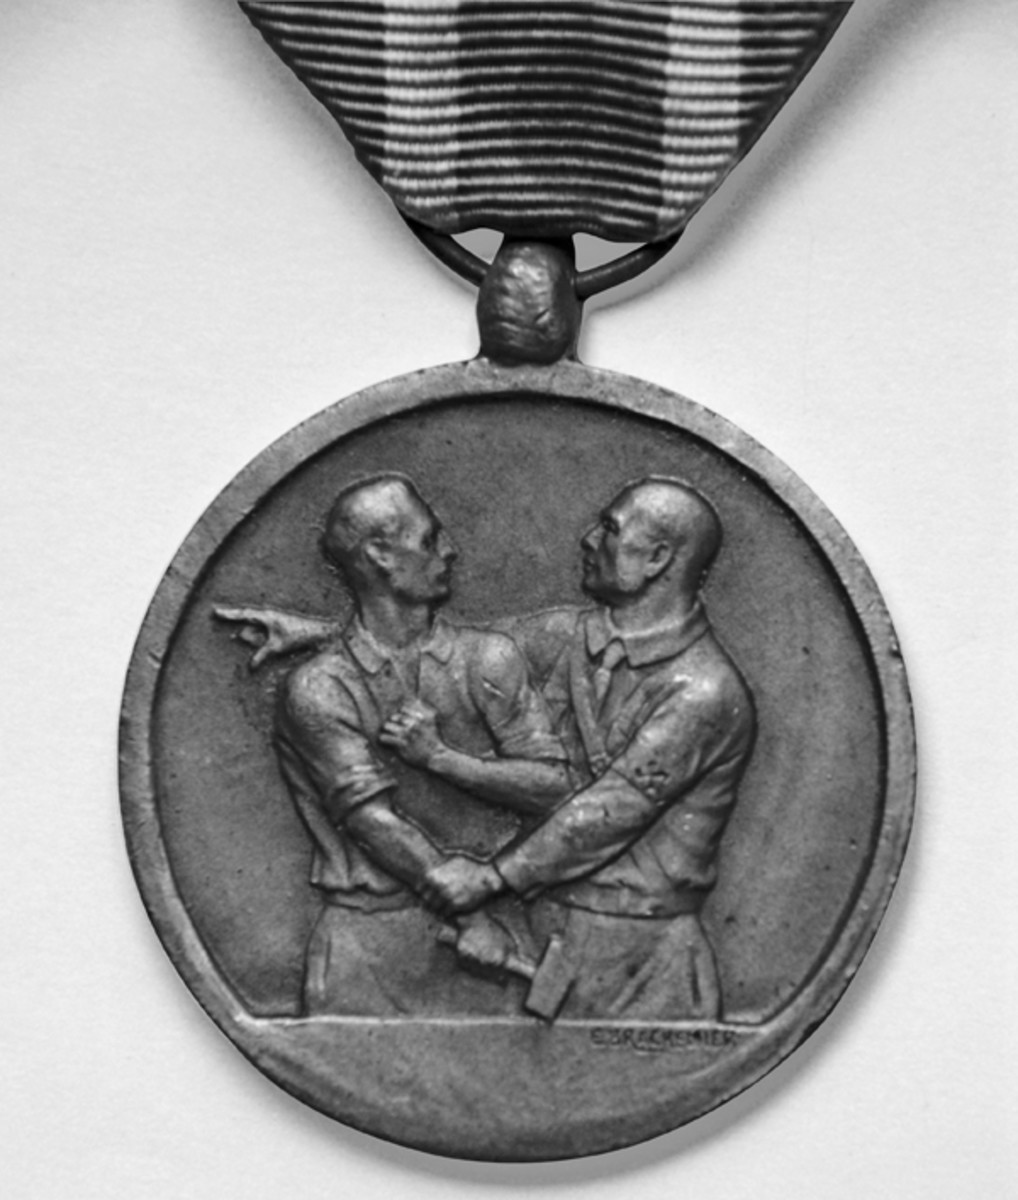 Obverse of the unofficial Belgian Medal for those deported, showing the oppression of the time. The designer's name, E. Brackenier, is visible below the waist of the man on the right.